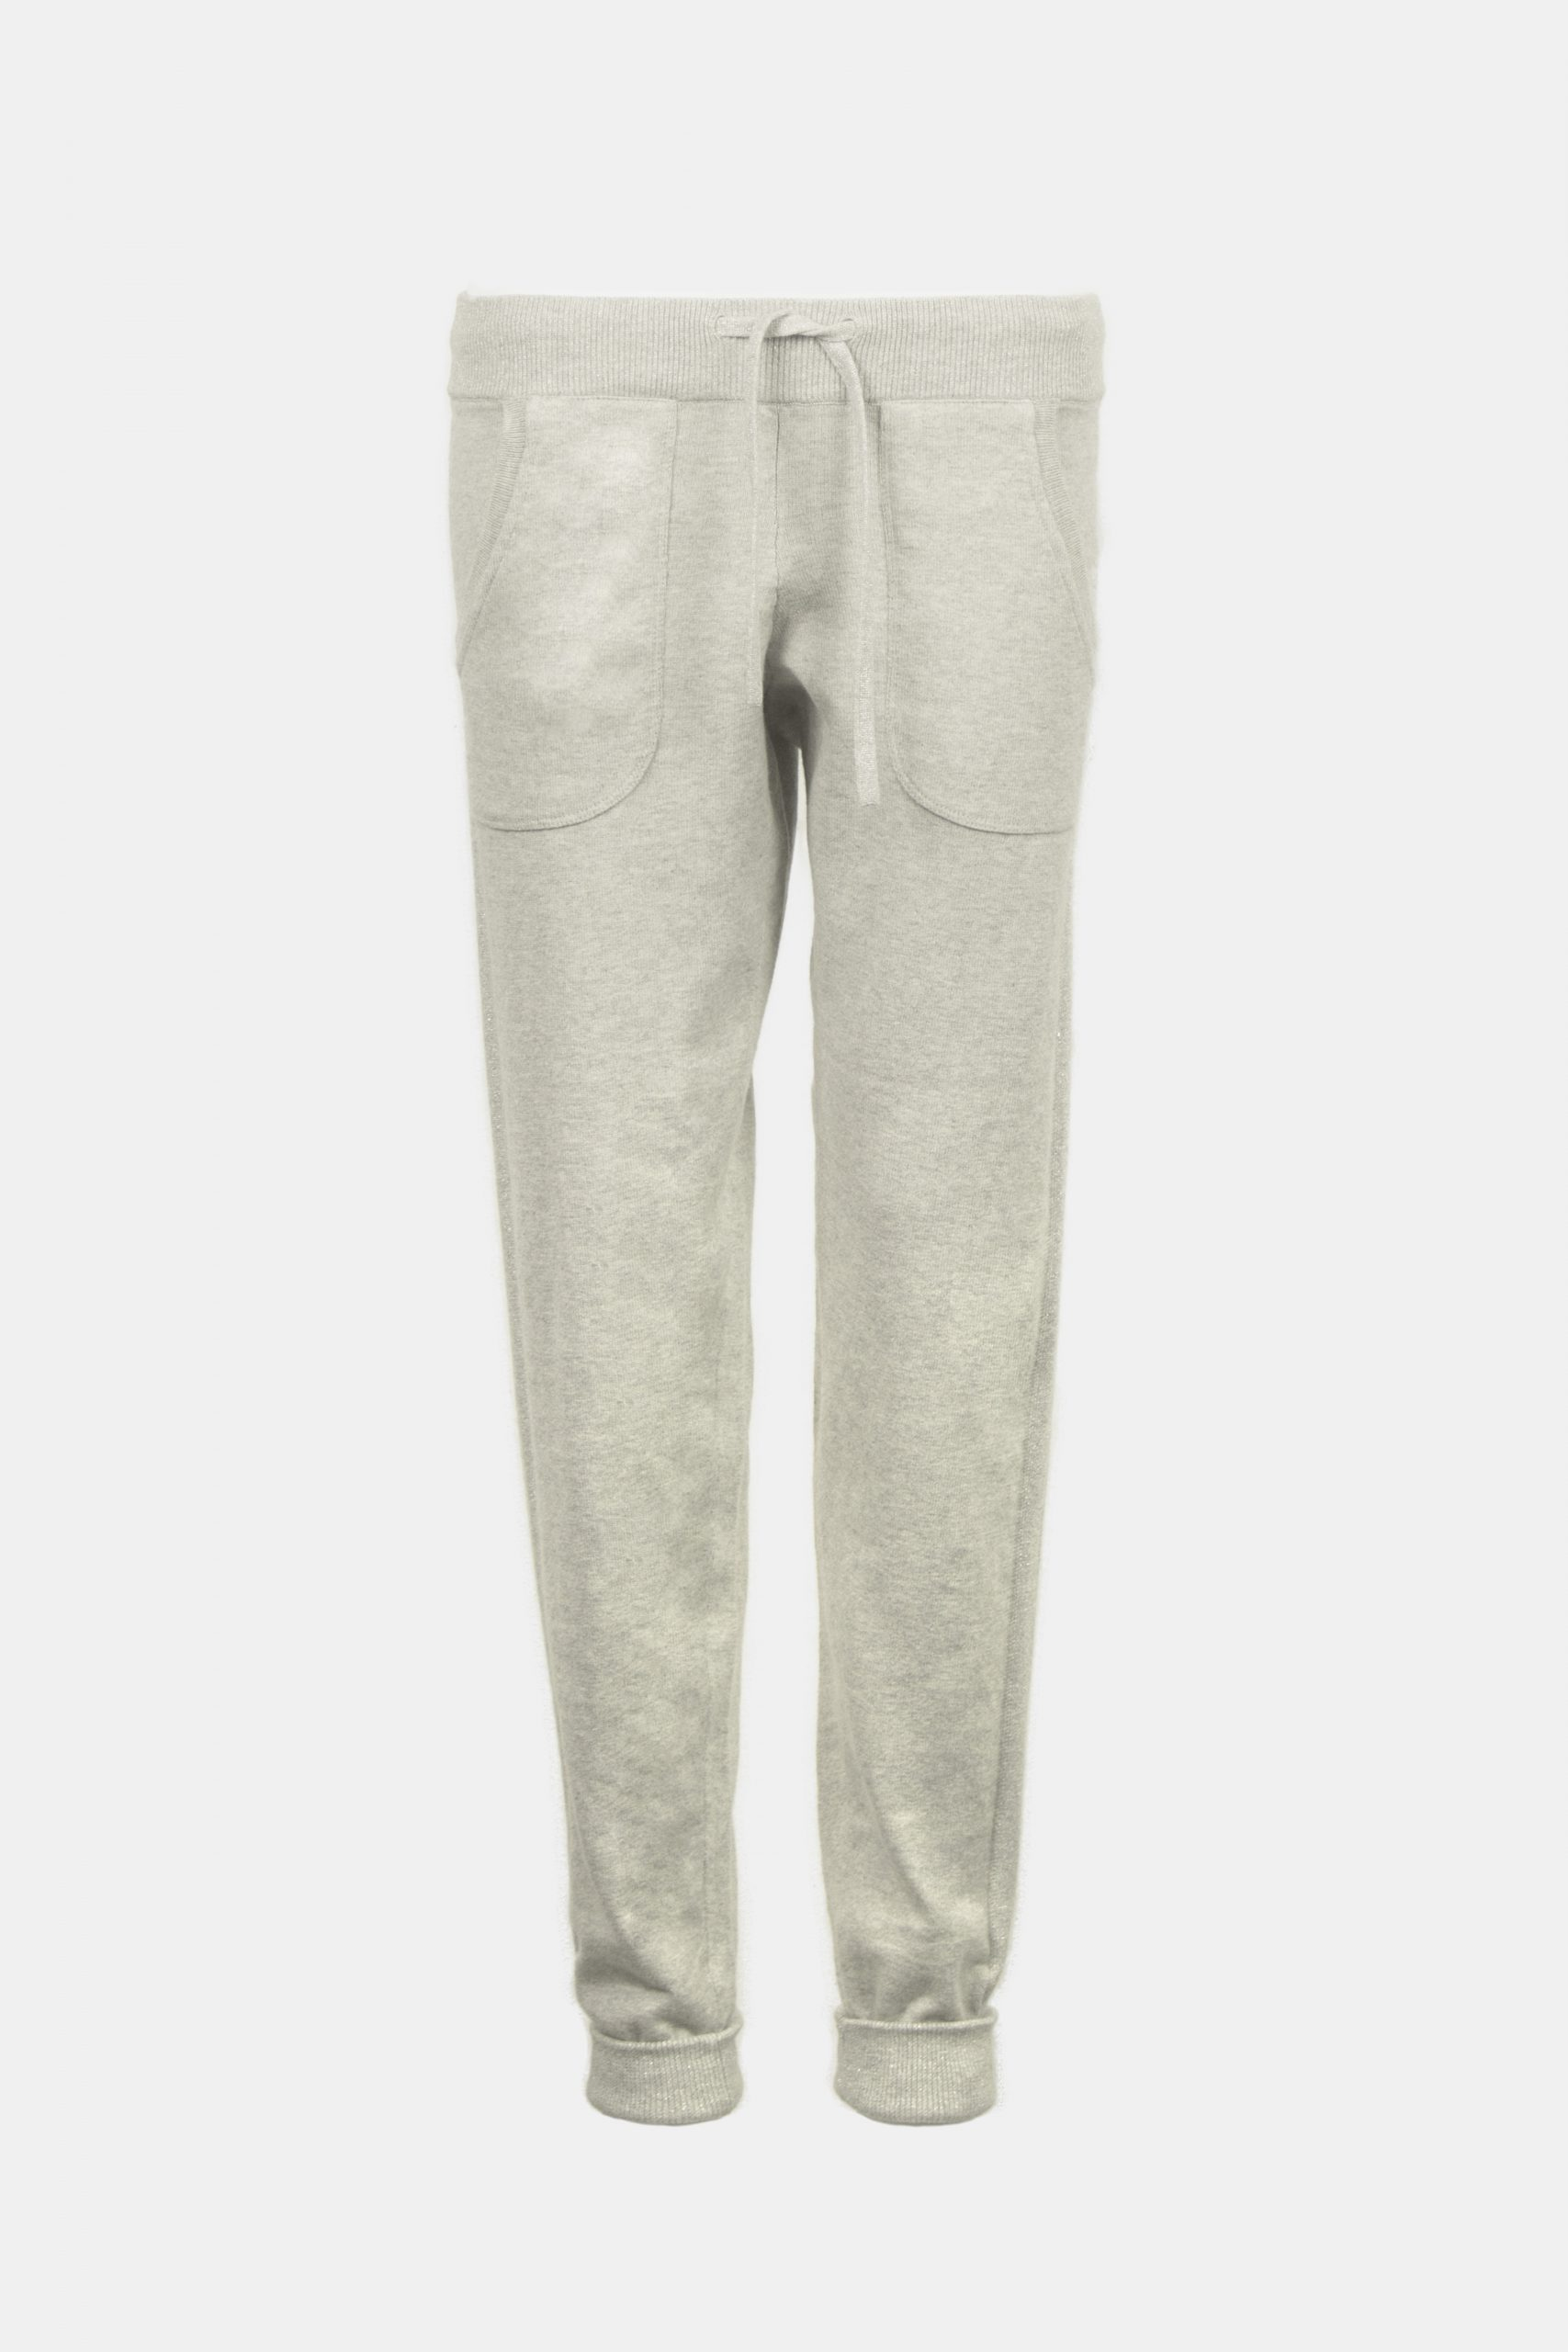 Ballet Pants Cashmere Melange | Leisure Wear | Deha | BALLETONIST